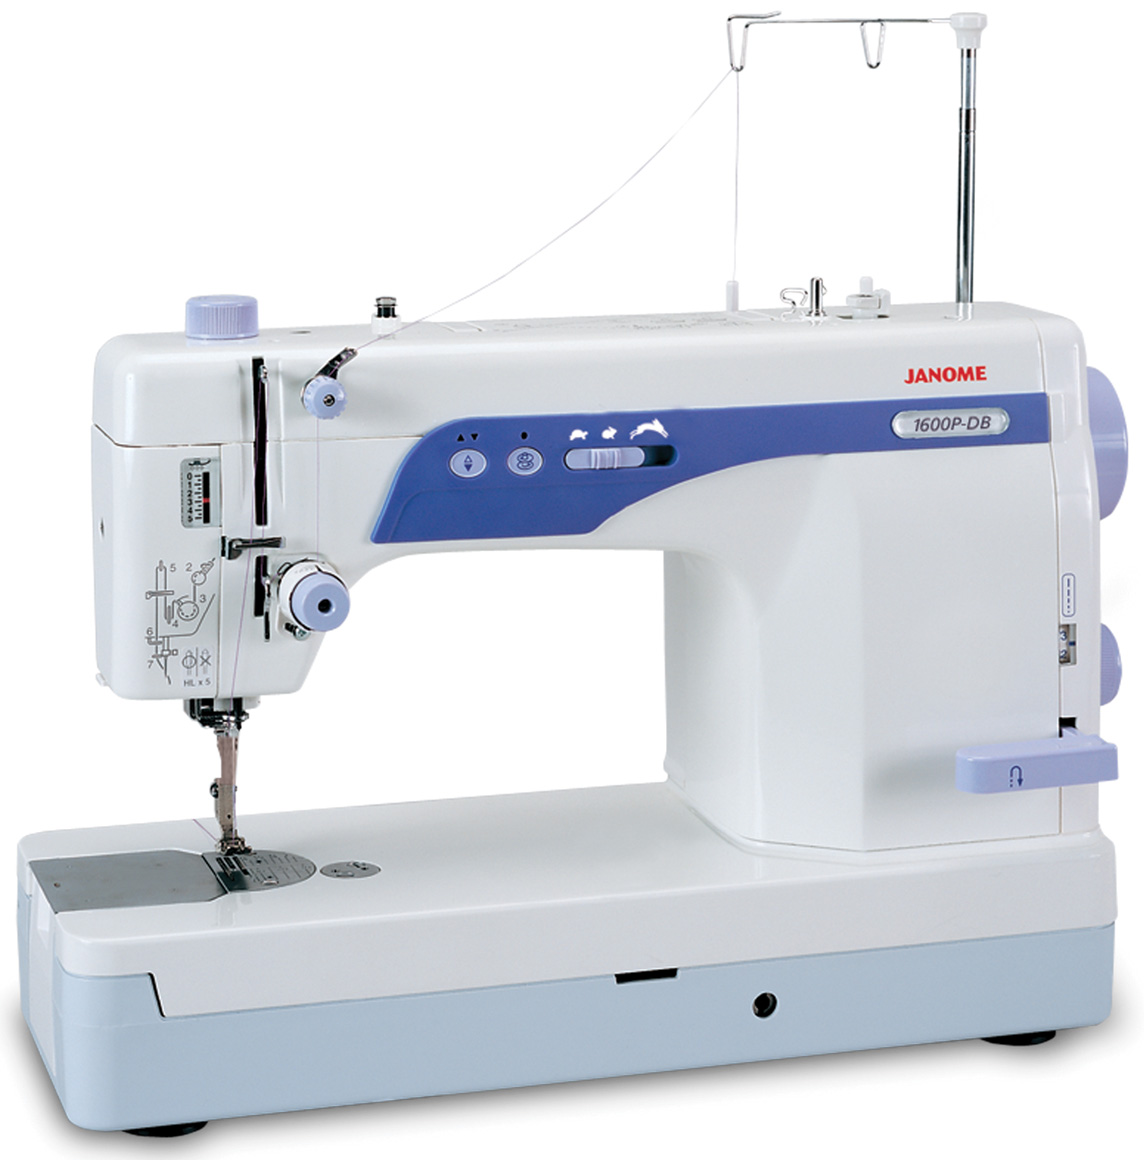 Janome 1600P-DB High Speed Sewing Machine (CLOSEOUT ONLY 2 LEFT)